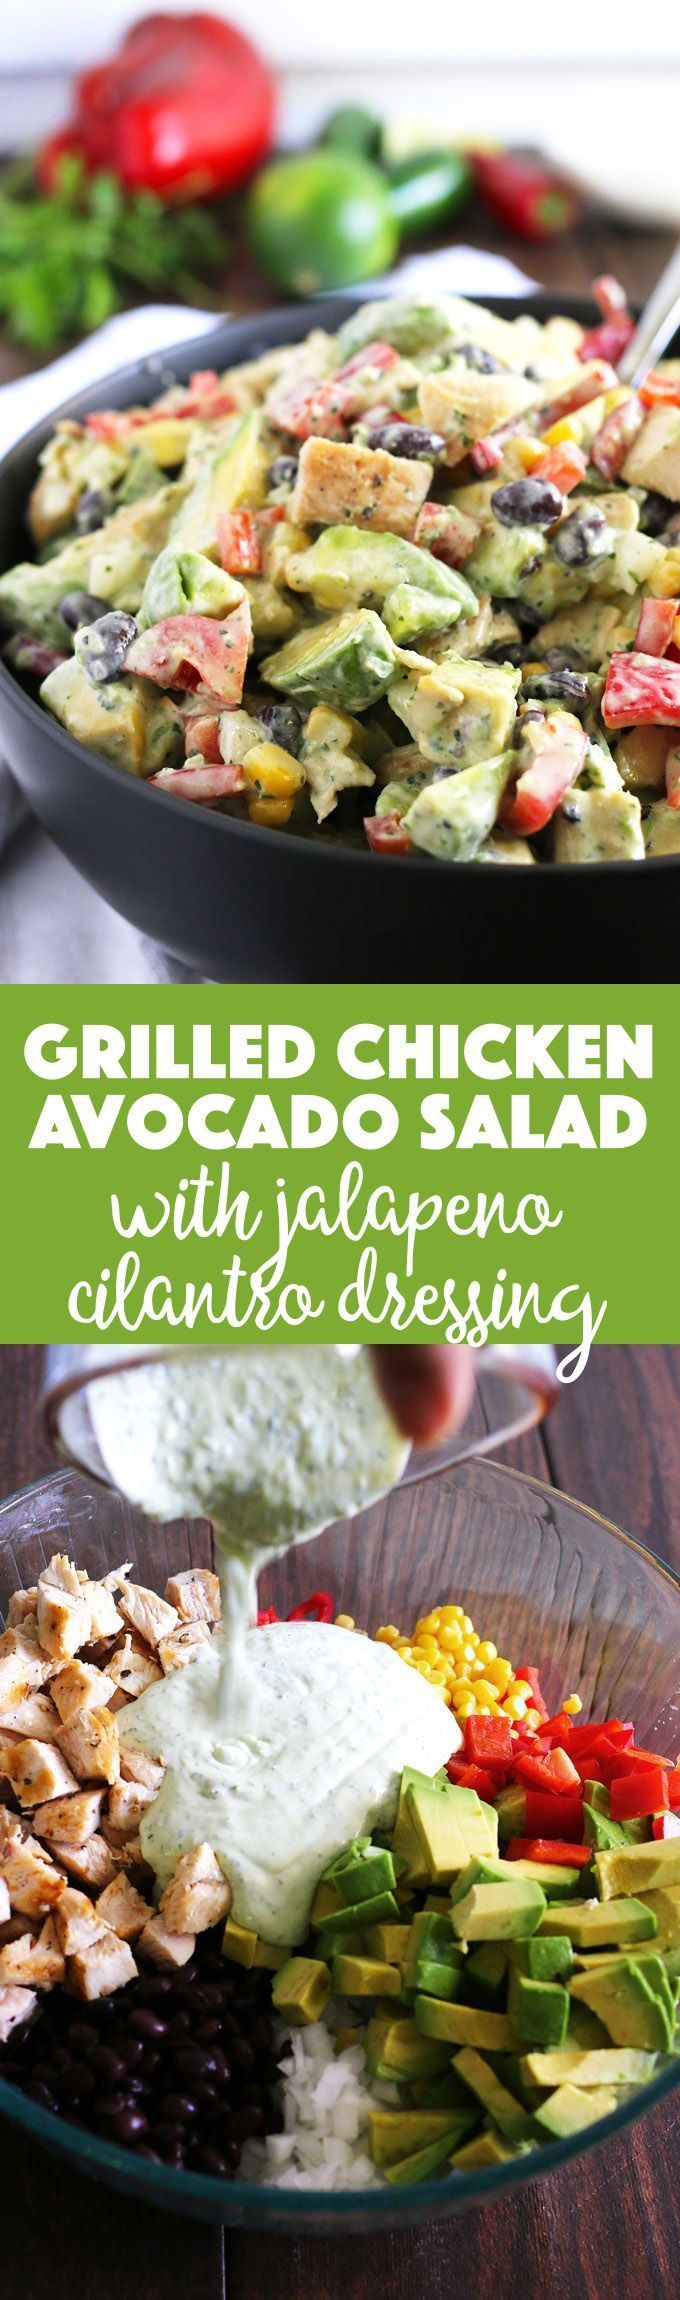 This grilled chicken avocado salad is topped with homemade jalapeno cilantro dressing. It is the perfect easy summer salad and great for quick lunches! Easy recipe, easy lunch!